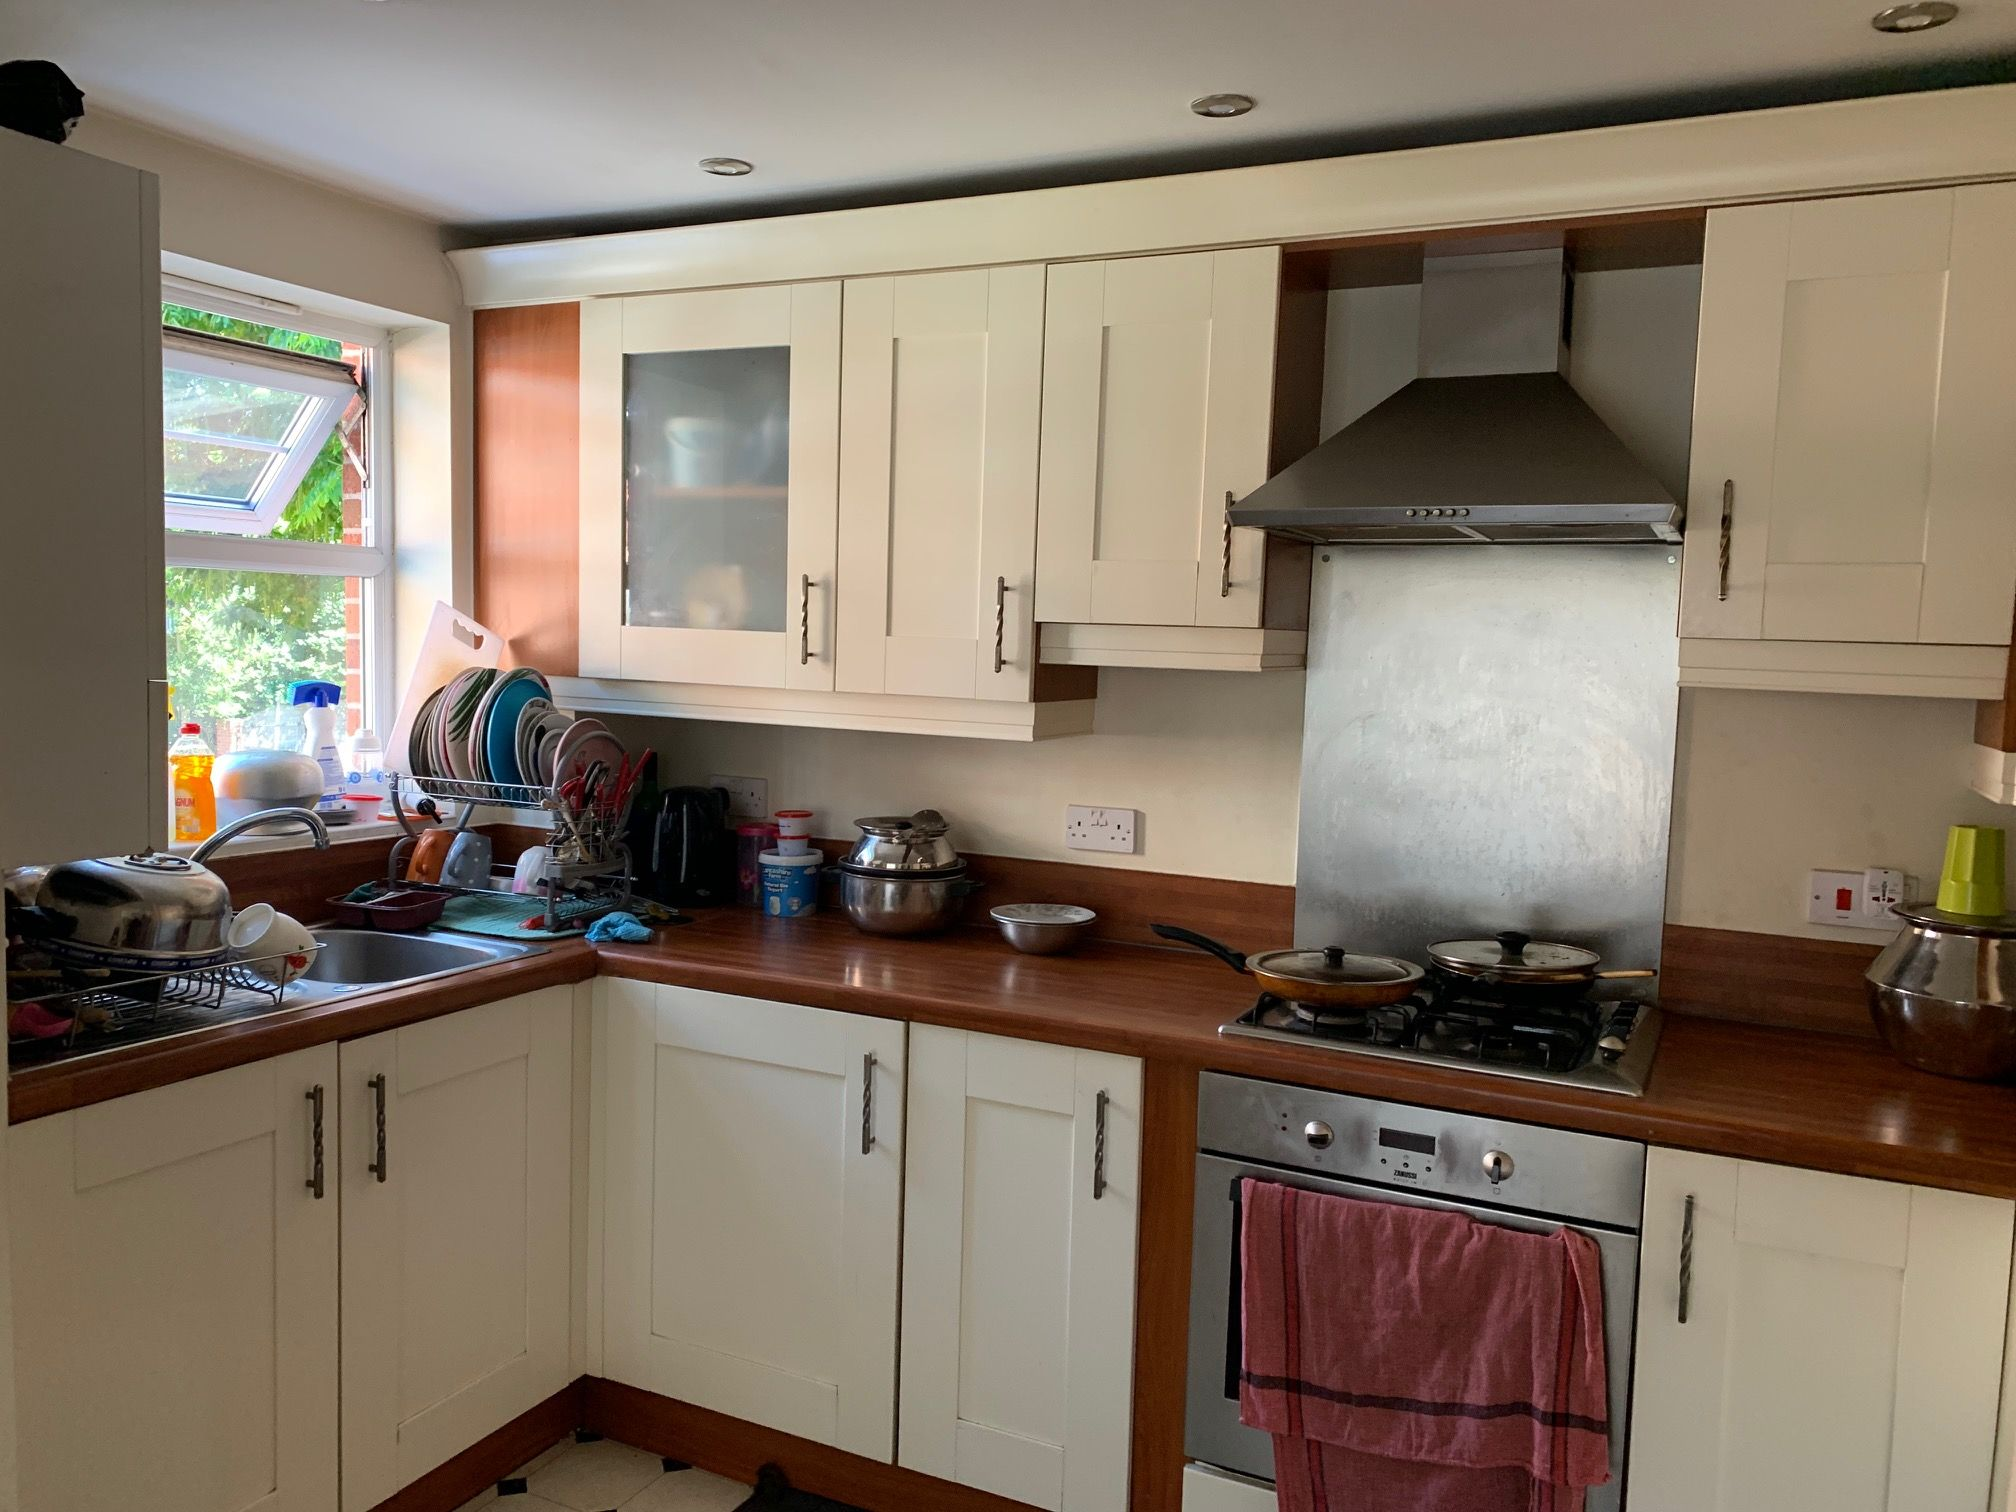 Image 1 of 2 of Kitchen/Dinner, on Accommodation Comprising for .